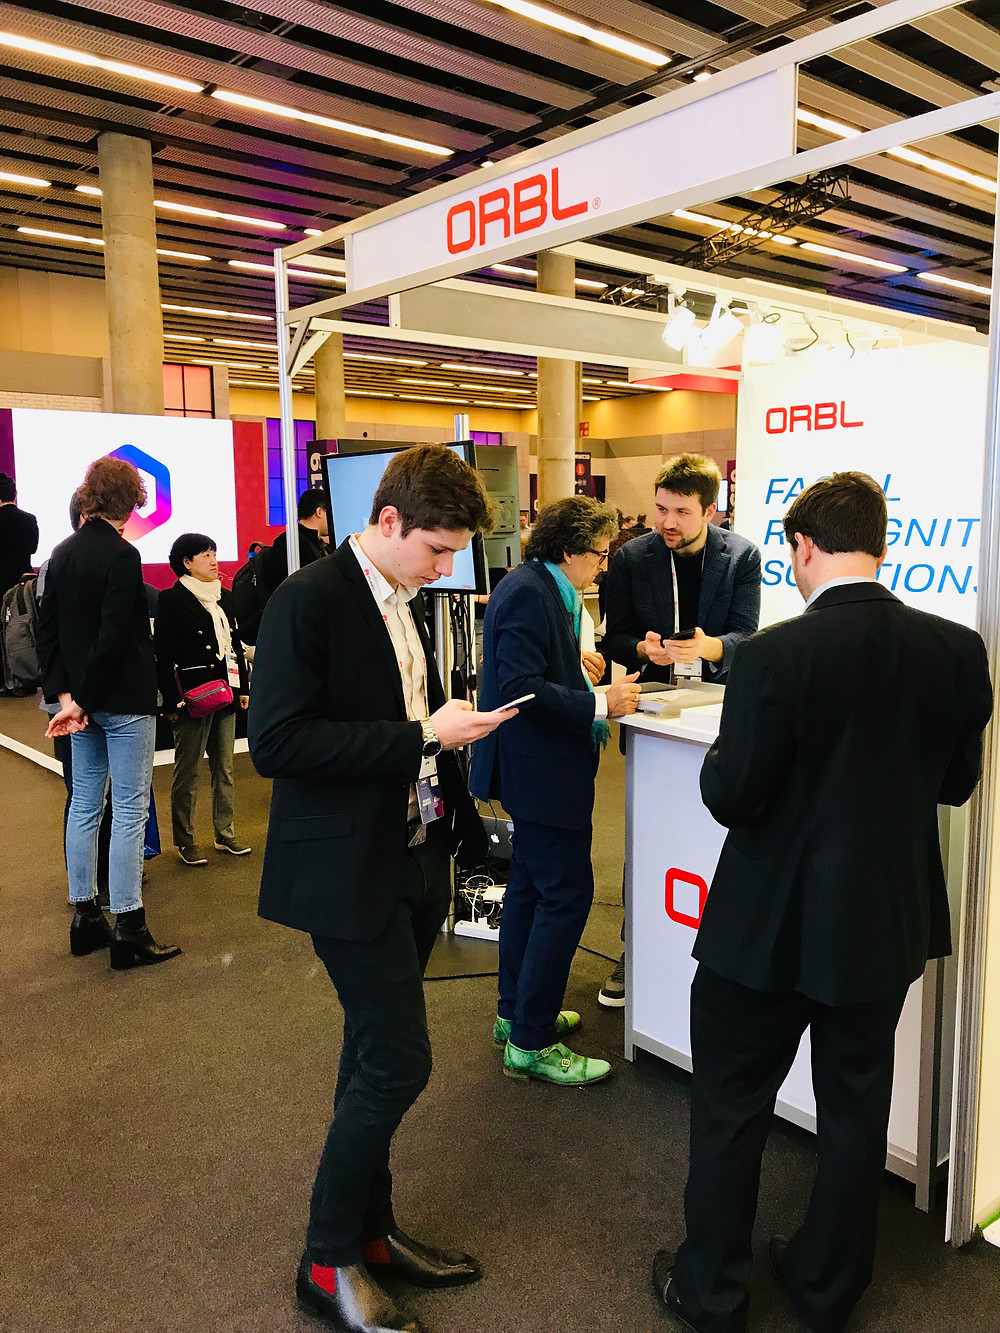 MWC2019, Mobile World Congress